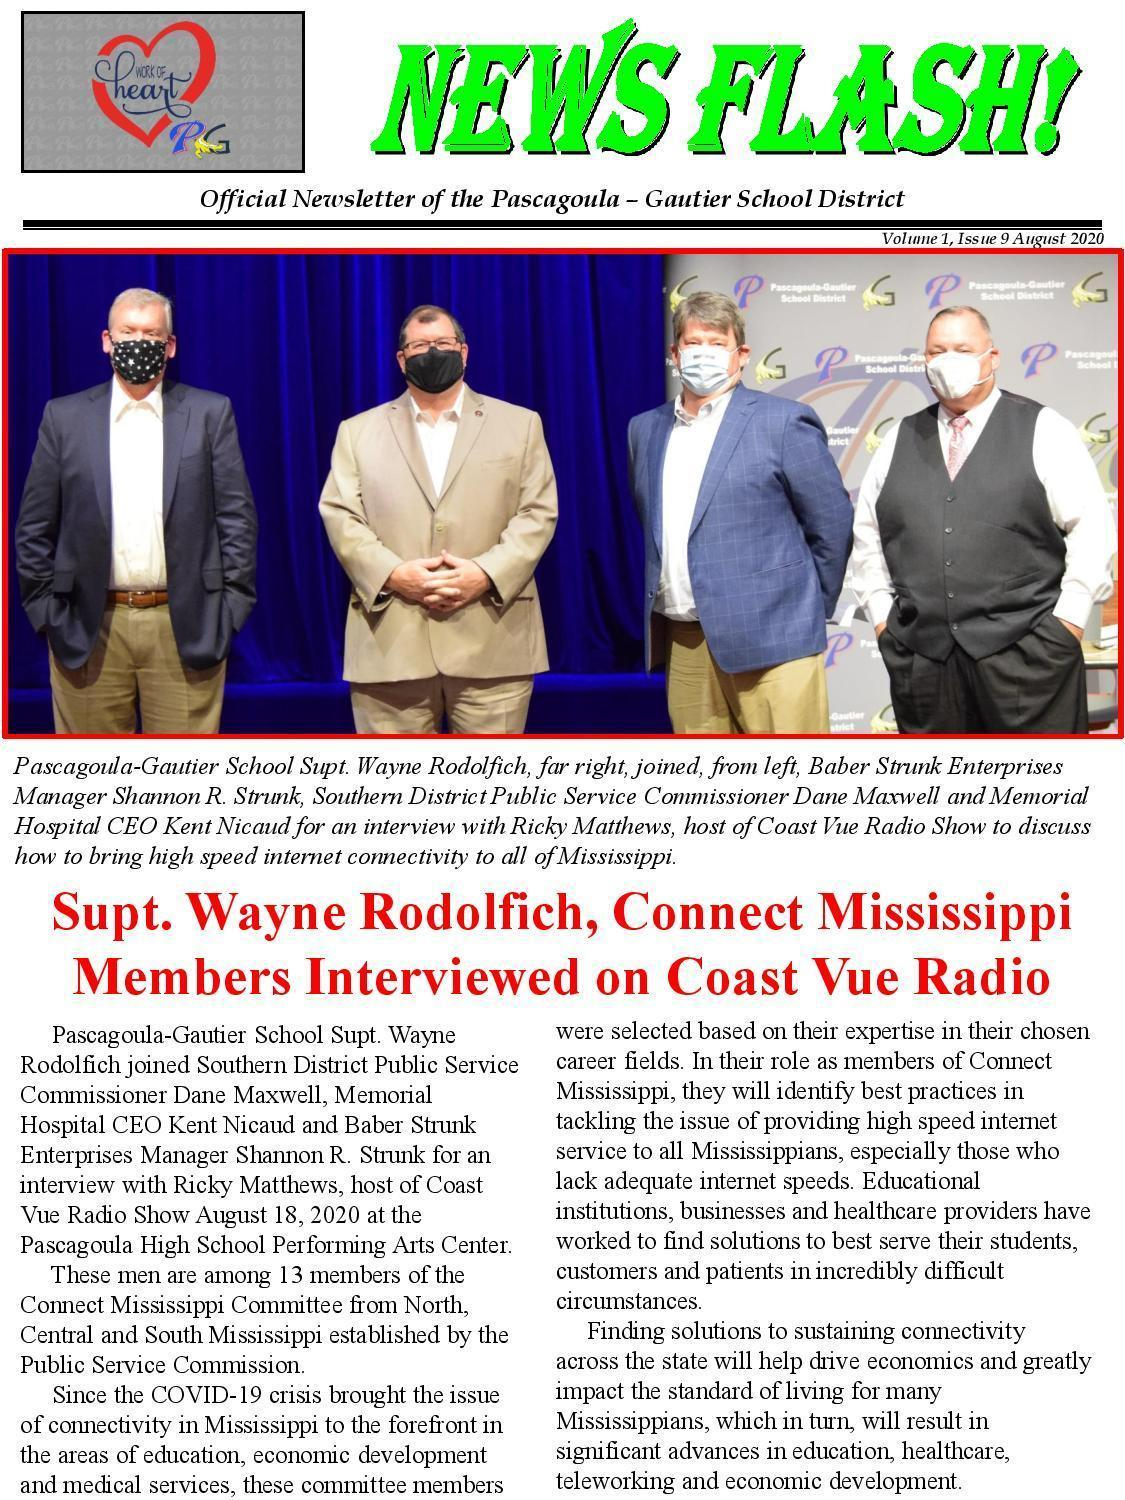 Vol. 1, Issue 9, Connect Mississippi